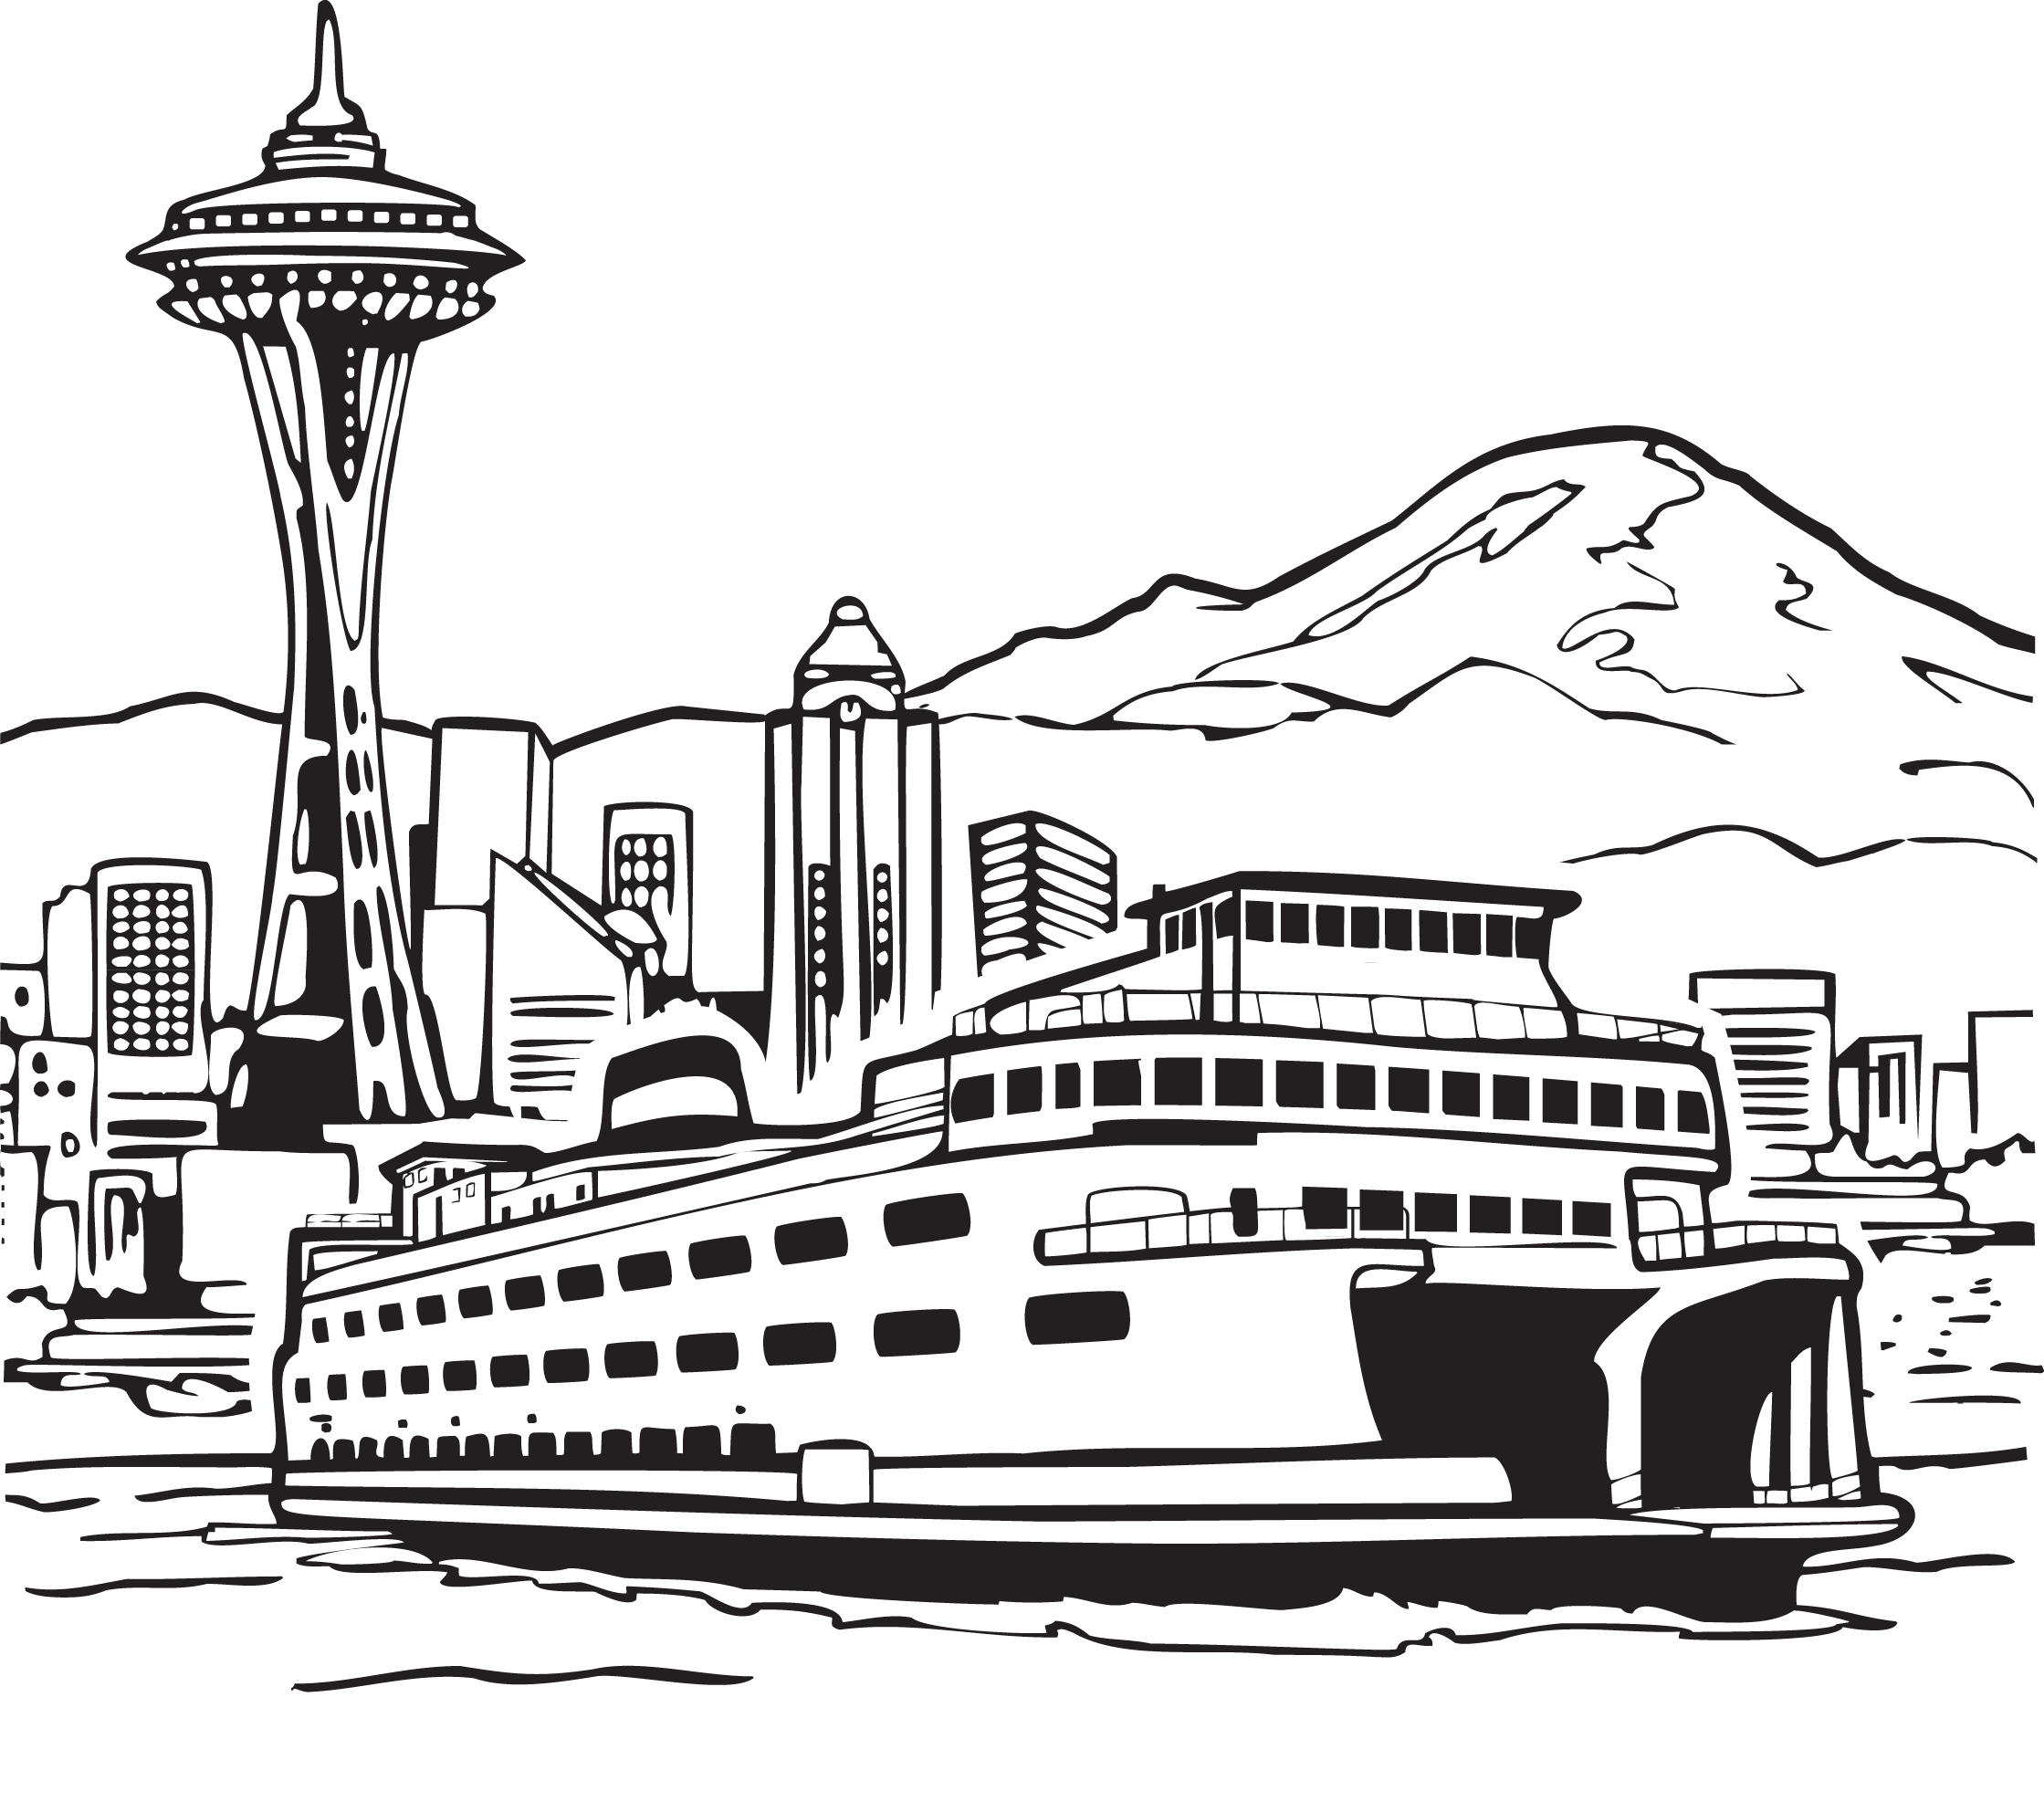 Space needle smith tower. Clipart boat passenger boat